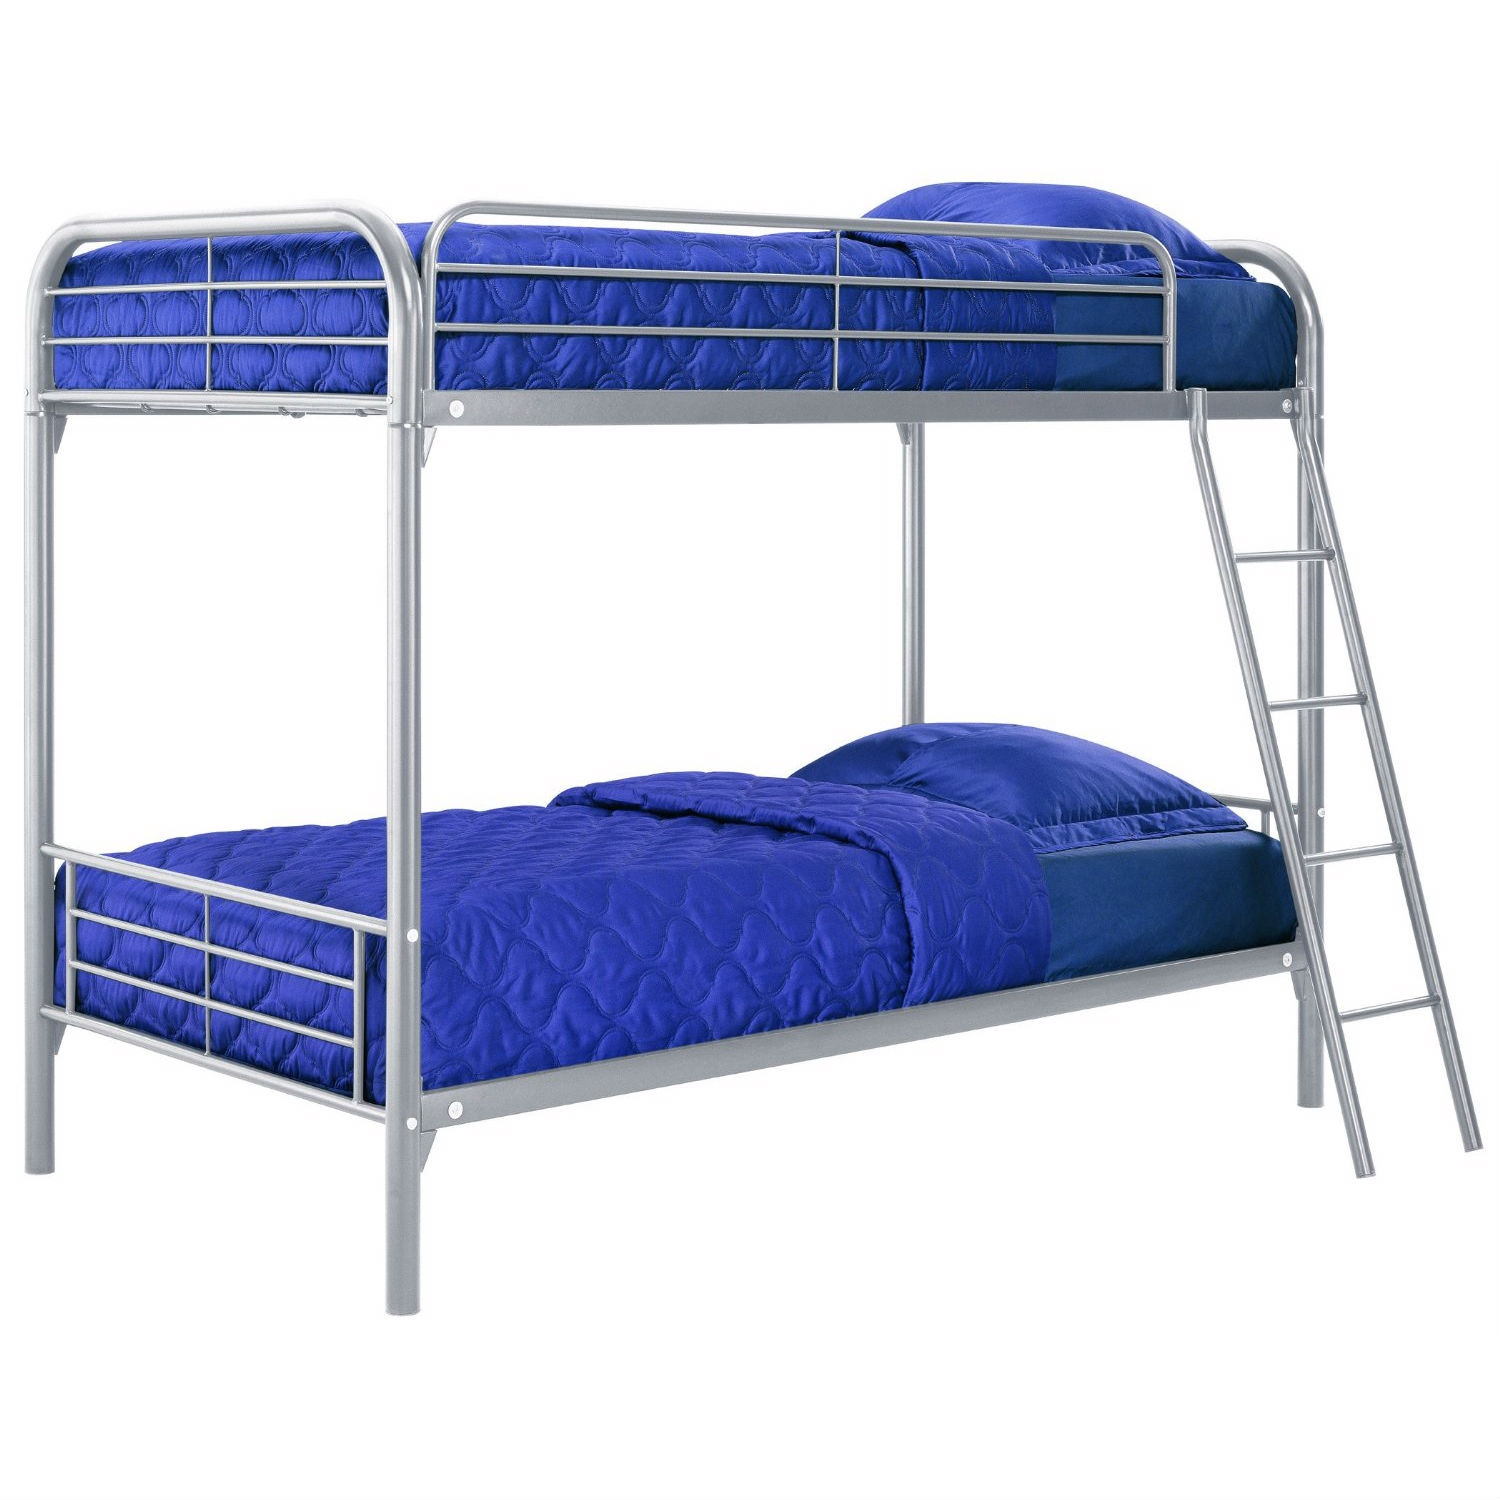 Twin over Twin size Silver Metal Bunk Bed: Product Code: DTOTBS14301 : This Twin over Twin size Silver Metal Bunk Bed is a space saver for multi-child rooms and great for sleepovers. It features two twin beds placed one above the other. Designed to maximize space - accommodates 2 standard twin mattresses; Full length guardrails for upper bunk for added safety; Mattresses sold separately; Some assembly required.